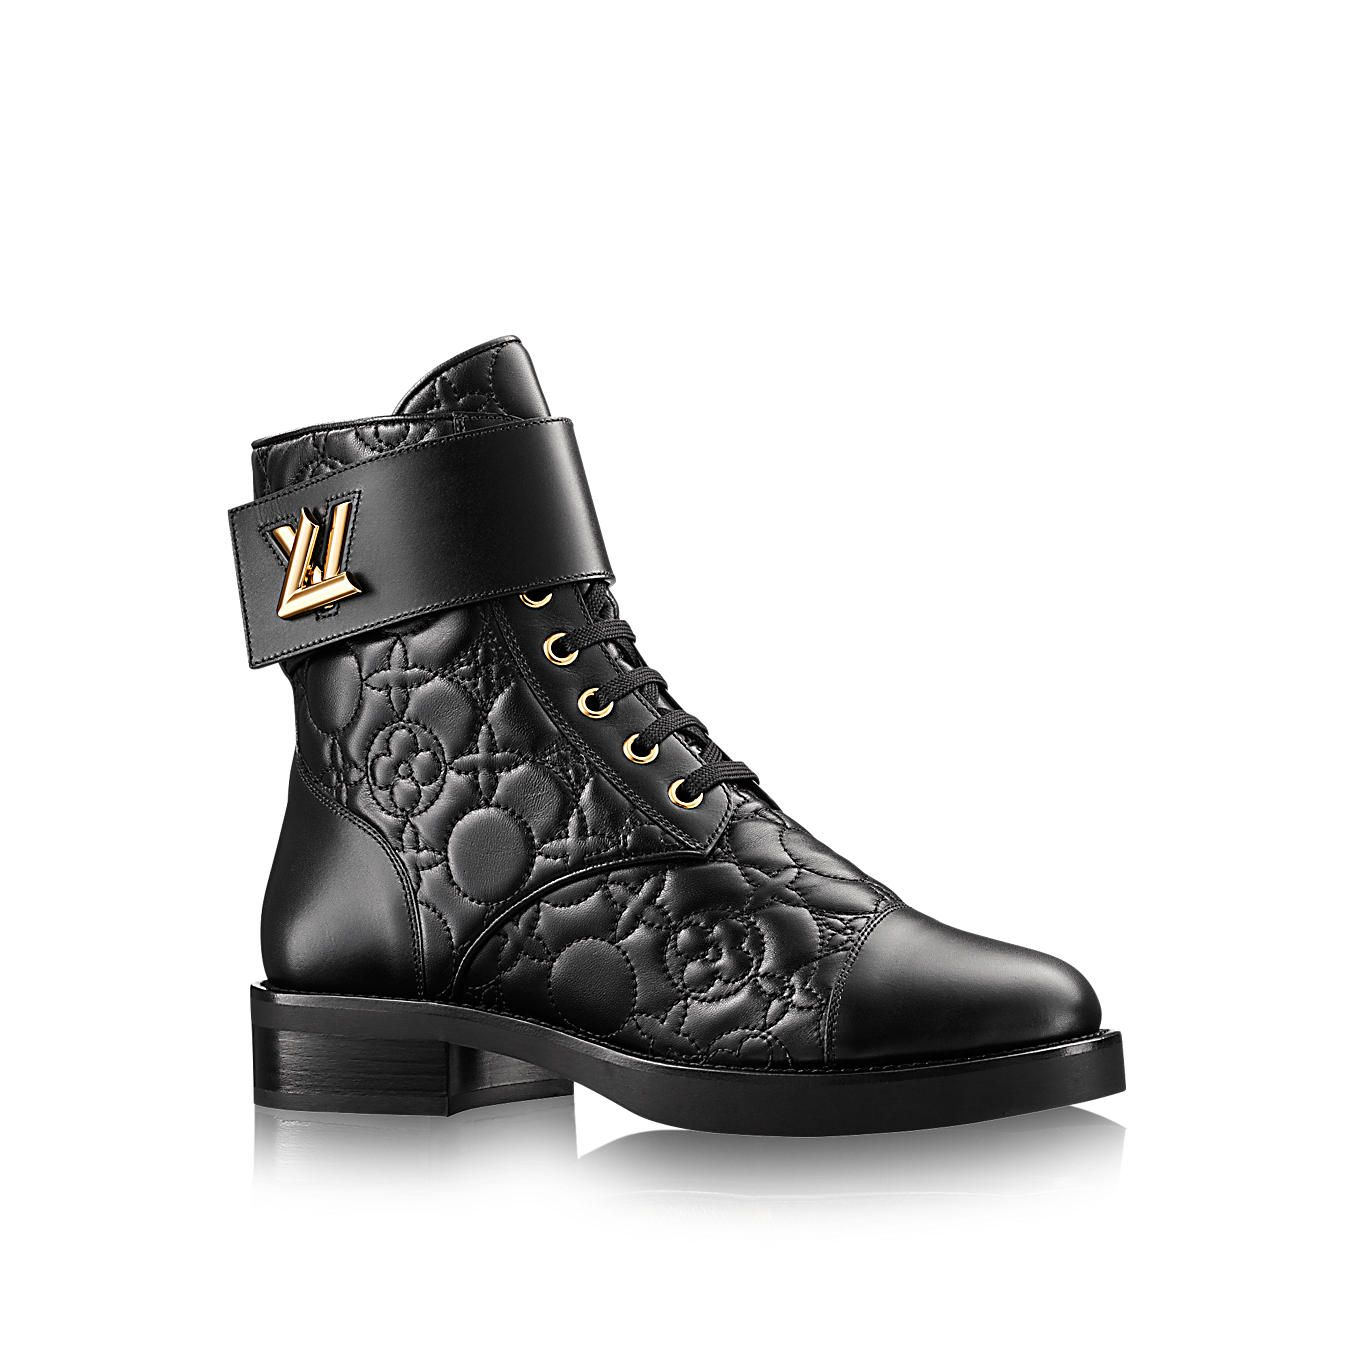 5377f906bf26 Discover Louis Vuitton Wonderland Flat Ranger Our must-have ranger boot